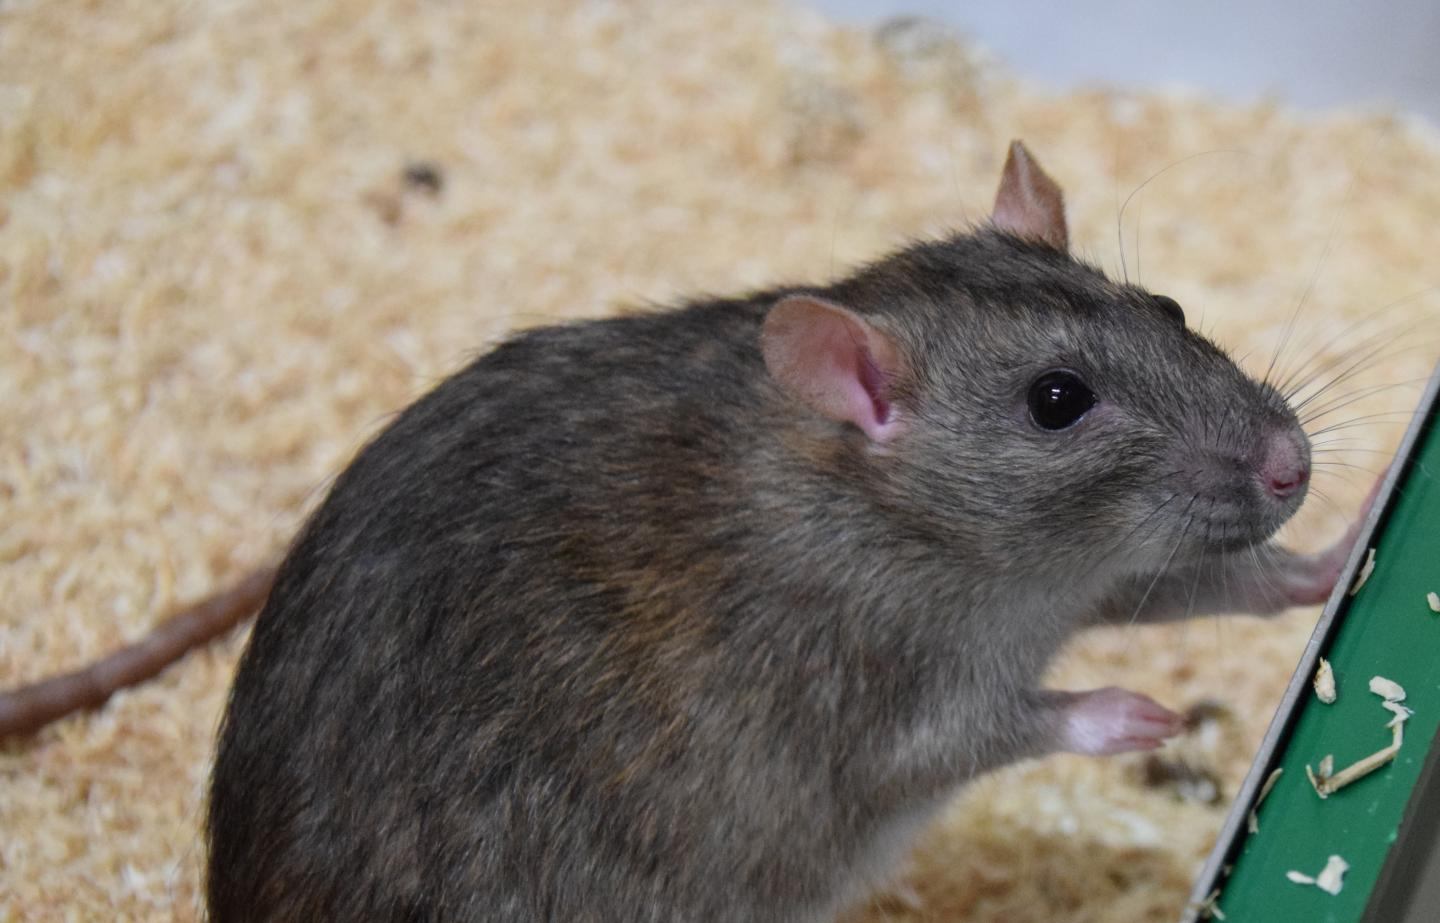 Shiny grey/brown rat with clear eyes on a bed of sawdust